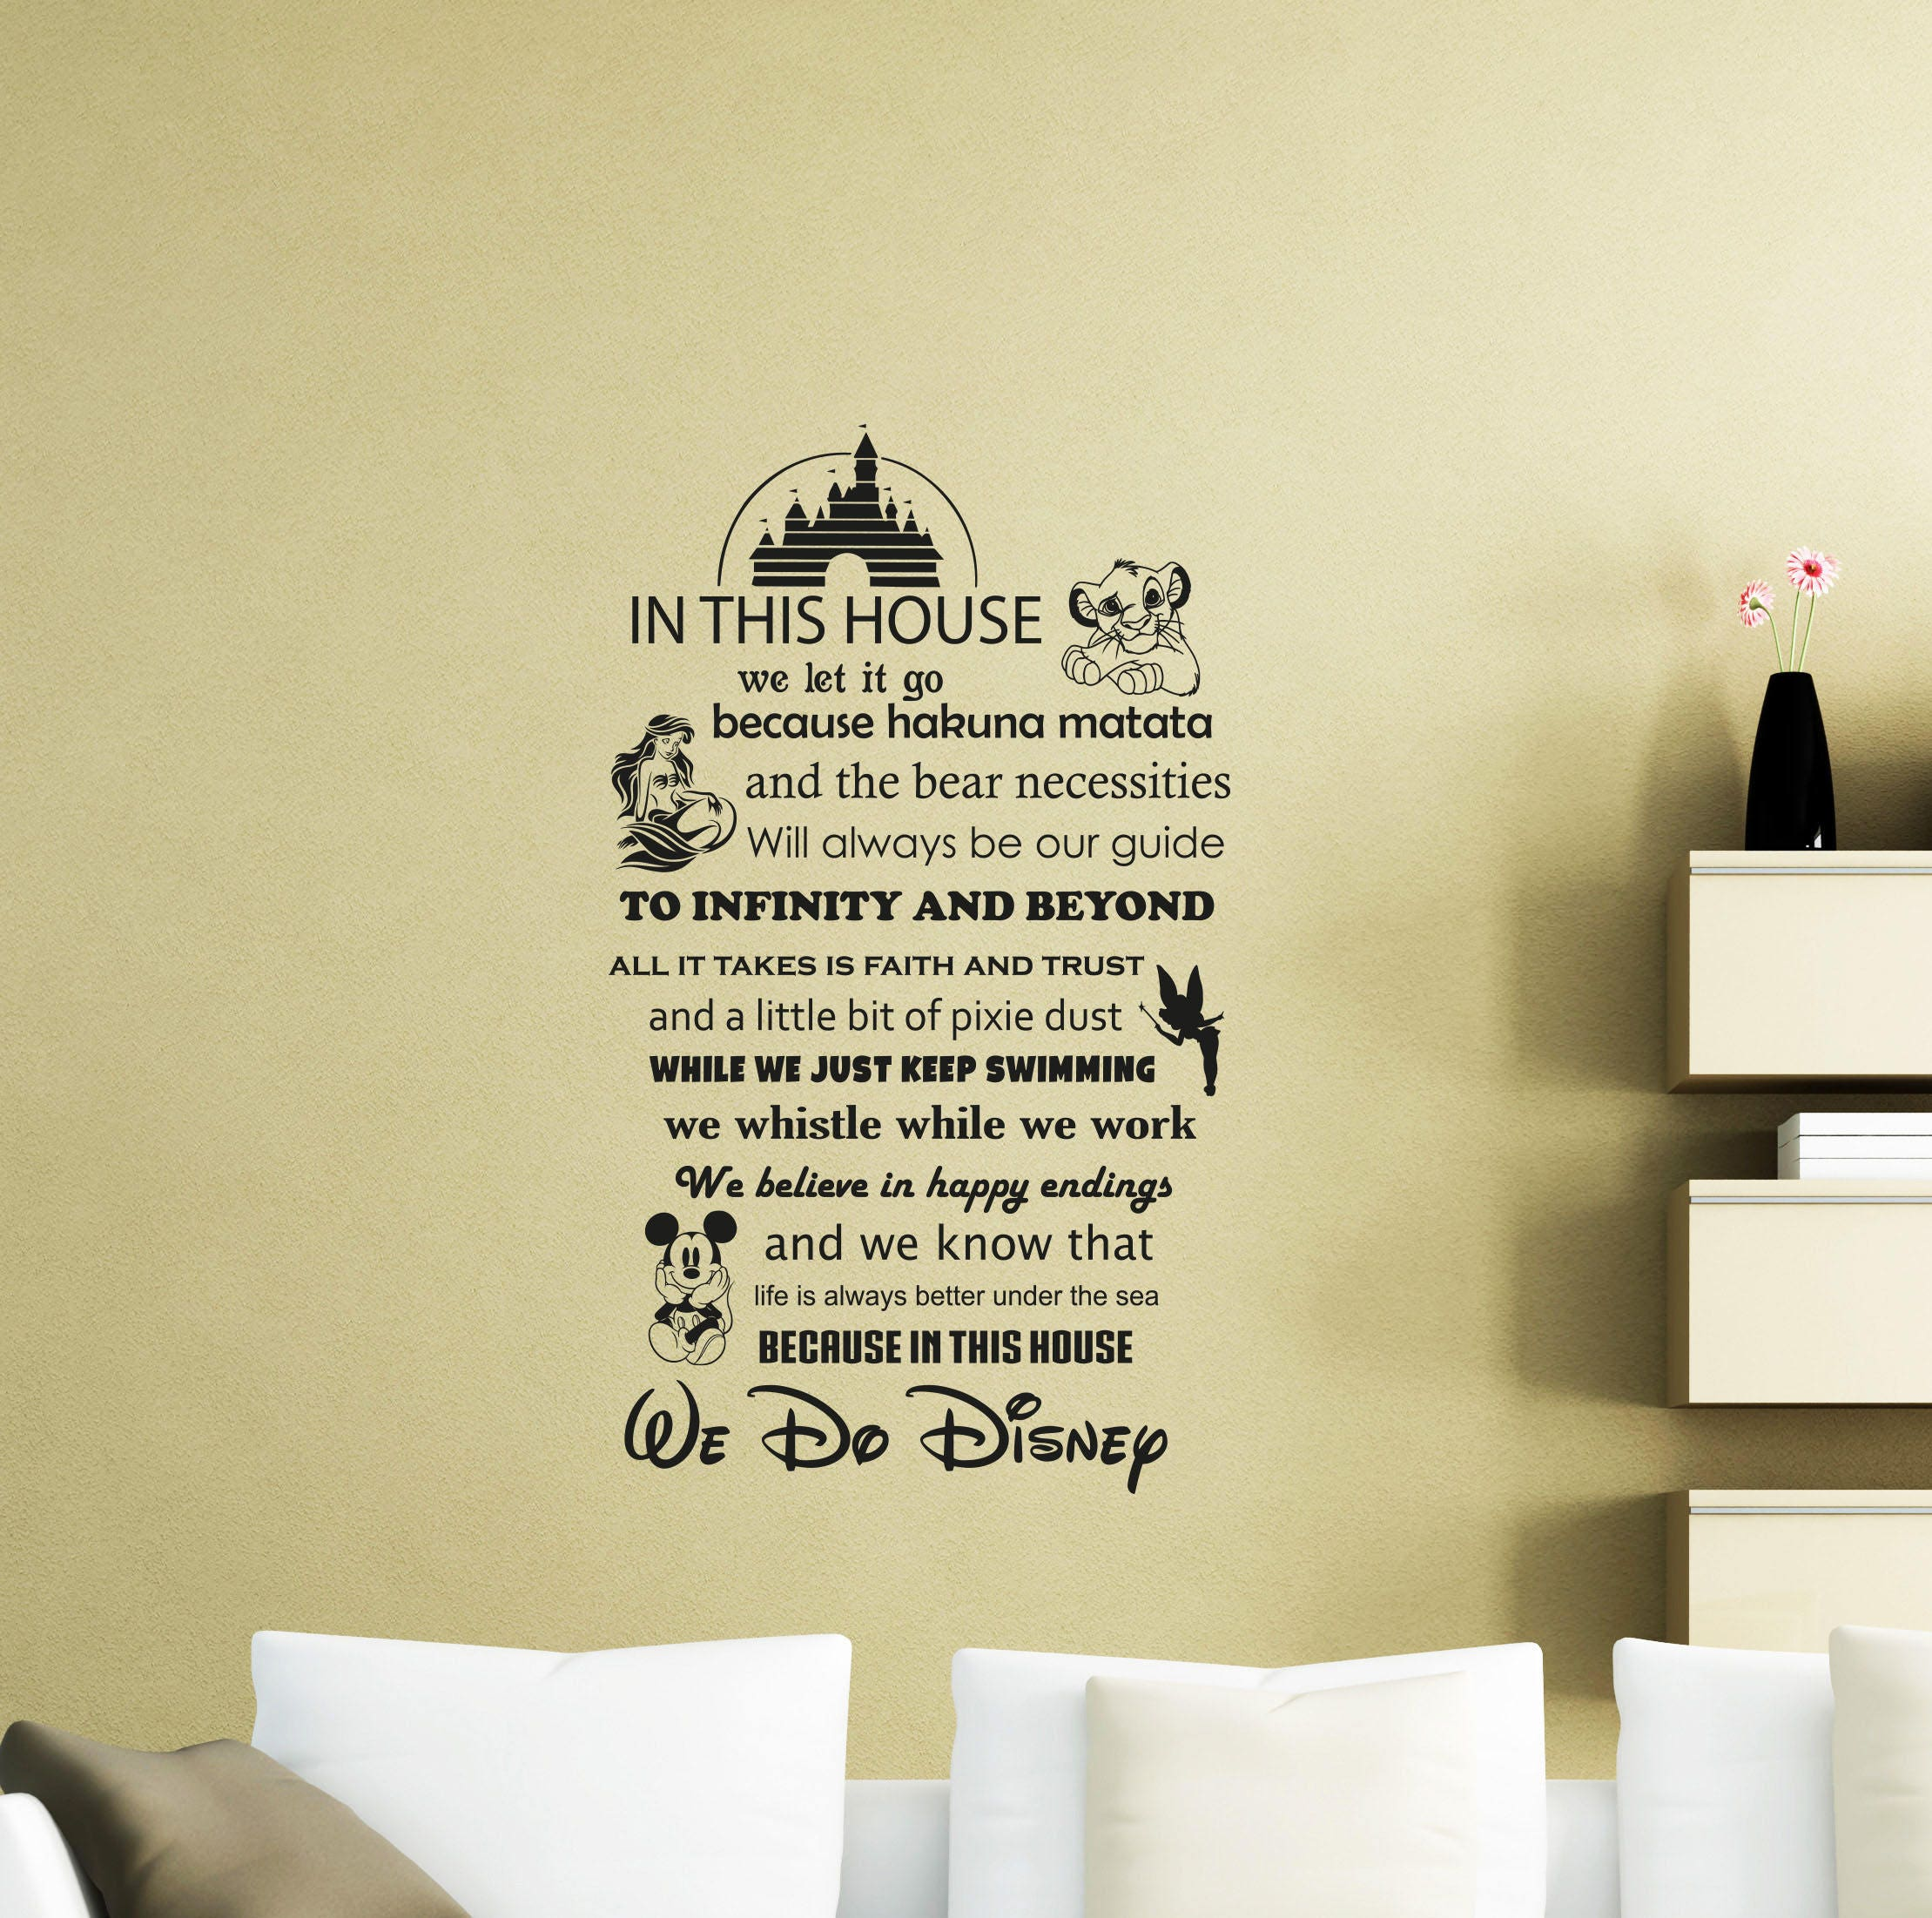 In This House We Do Disney Wall Decal Quote Vinyl Sticker Home | Etsy